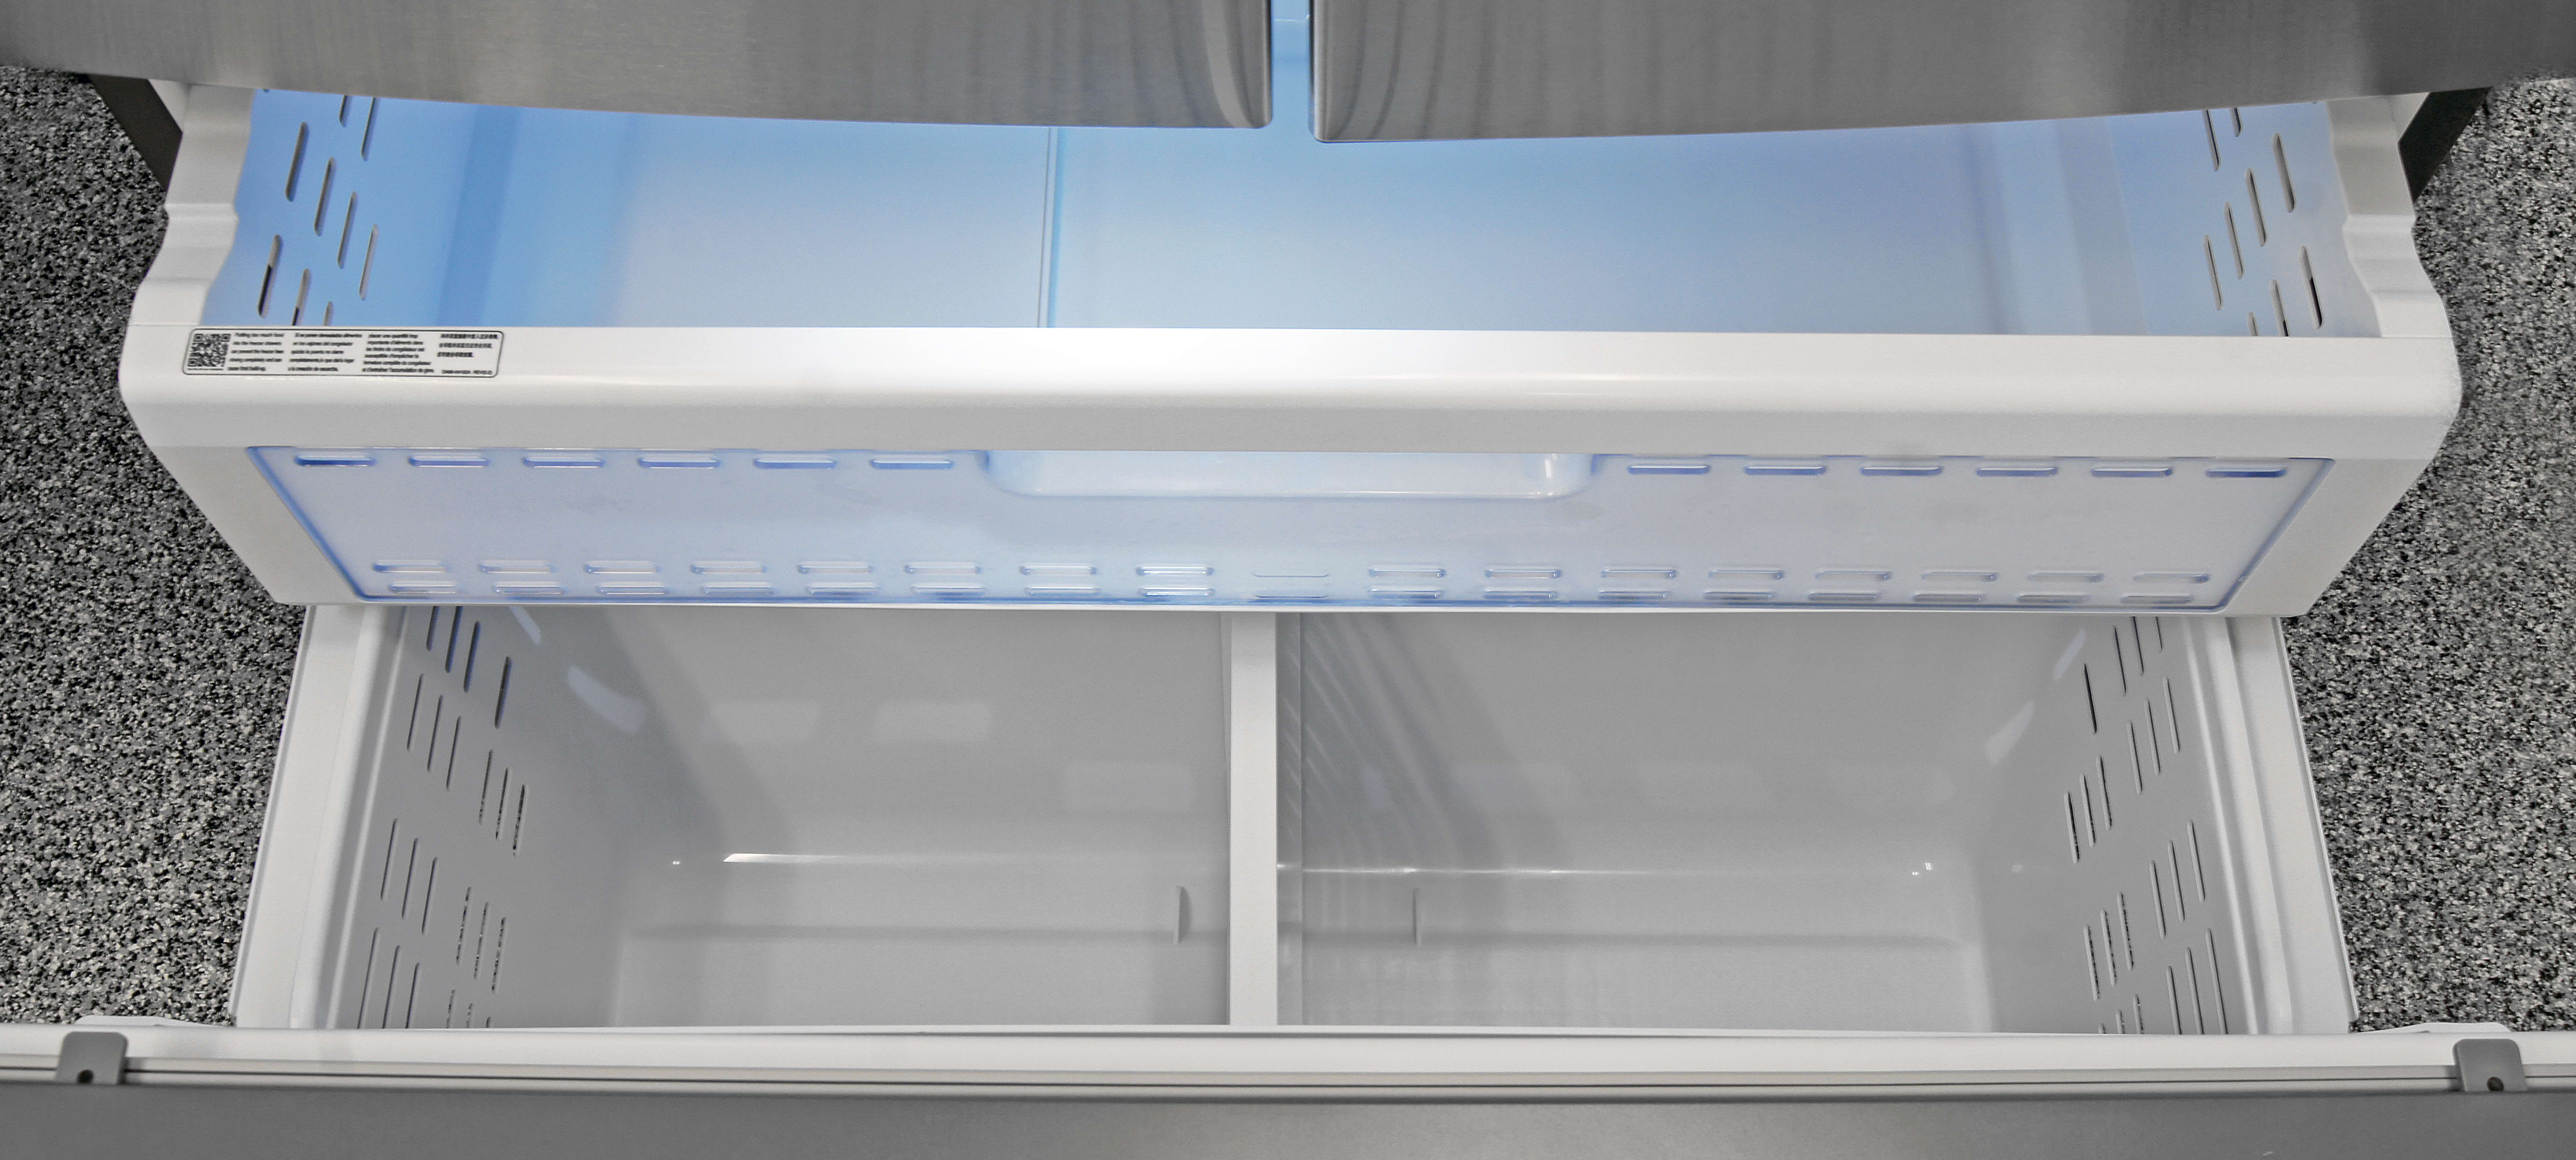 The Samsung RF23HTEDBSR's freezer has an upper and lower drawer, with an shallow shelf just inside the door.